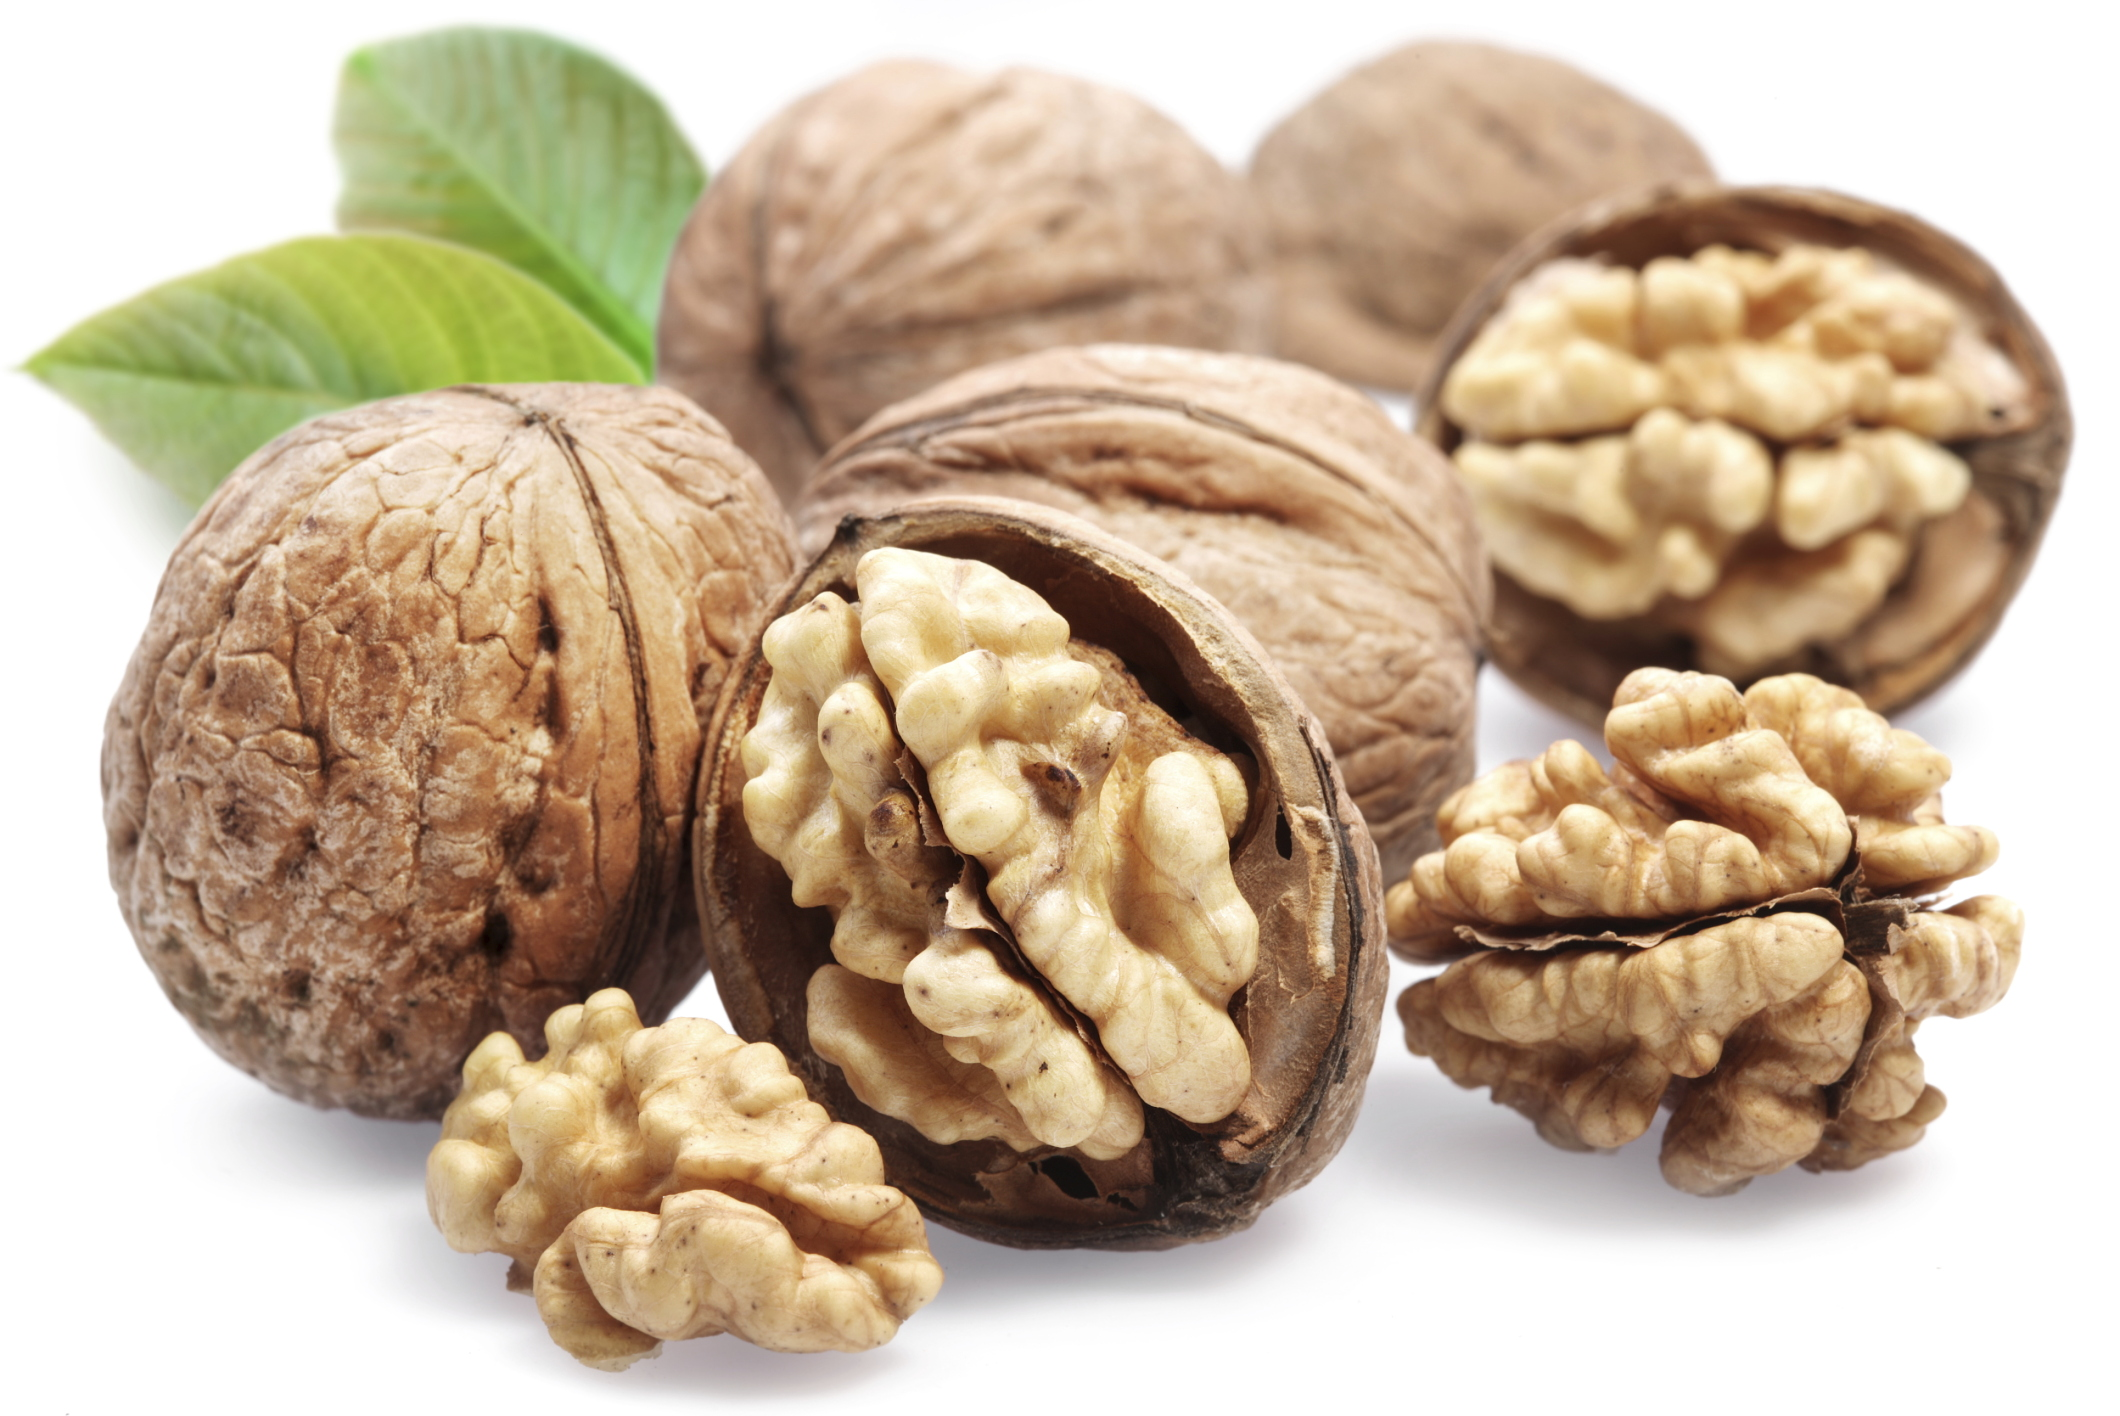 Walnut Pics, Food Collection